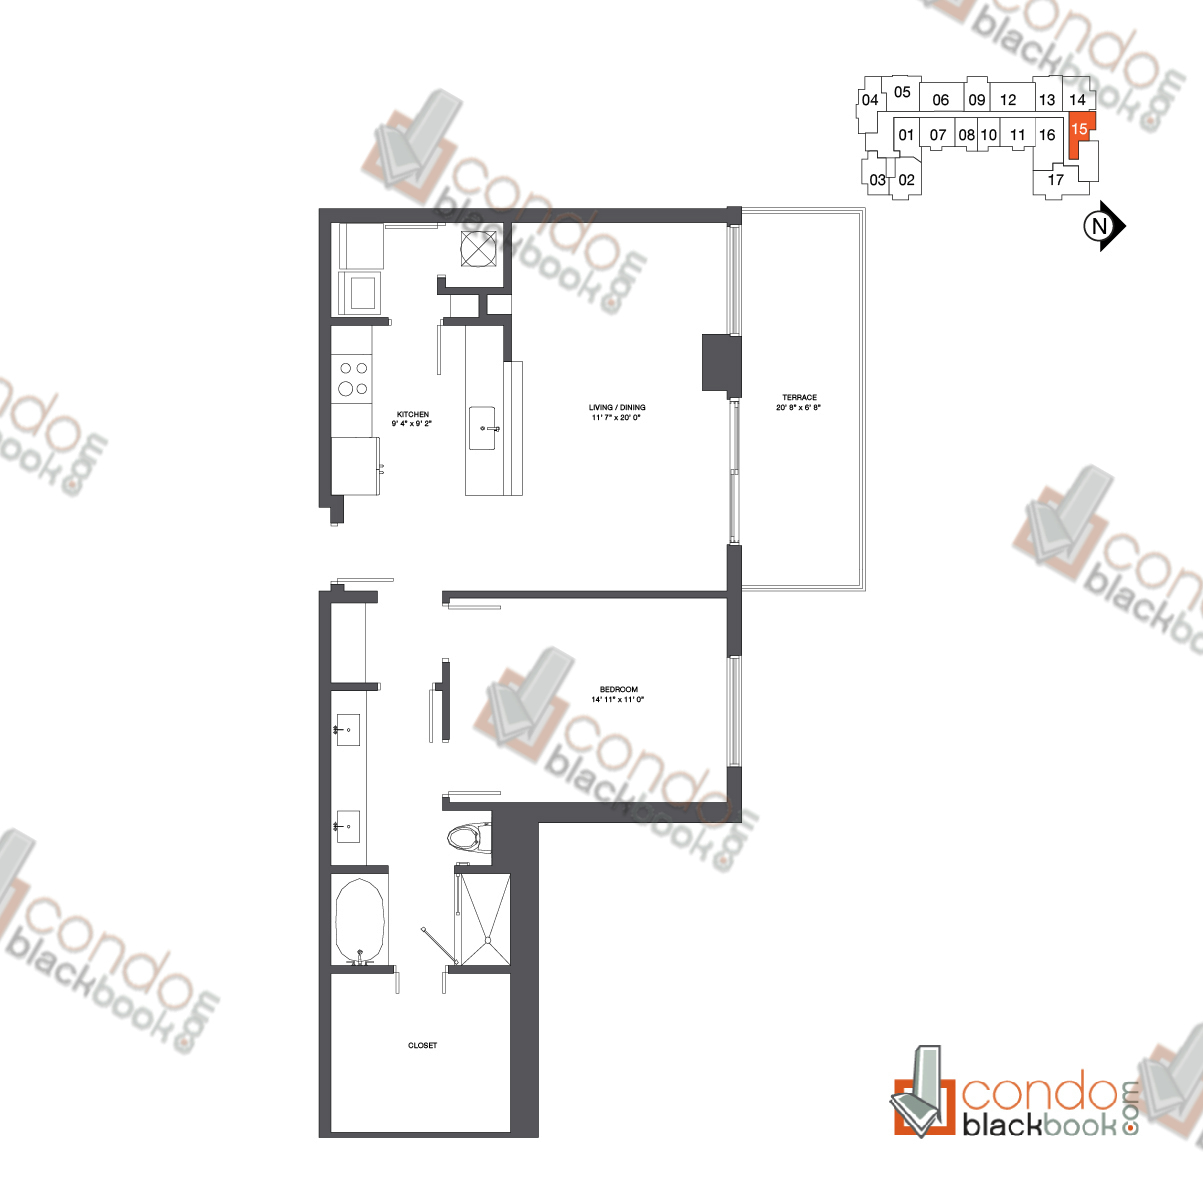 Floor plan for Nine at Mary Brickell Village Brickell Miami, model Residence 12-33_15, line 15, 1/1 bedrooms, 914 sq ft